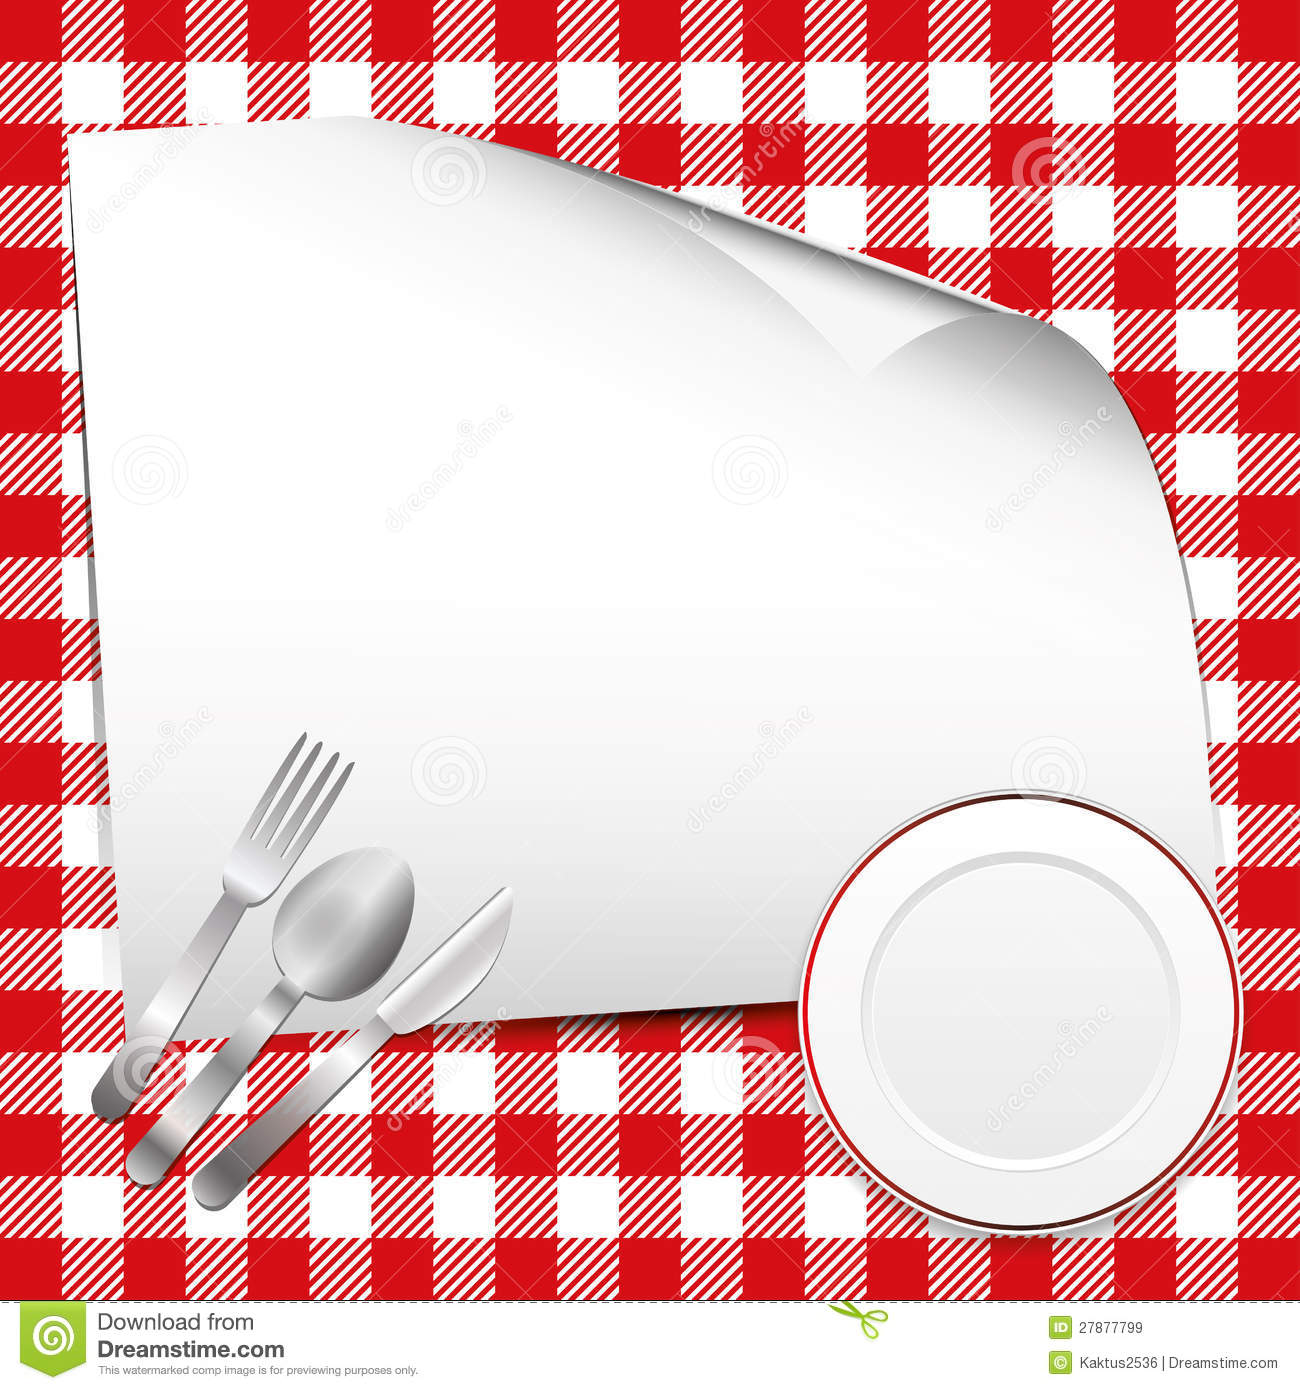 Red Restaurant Background Royalty Free Stock Images